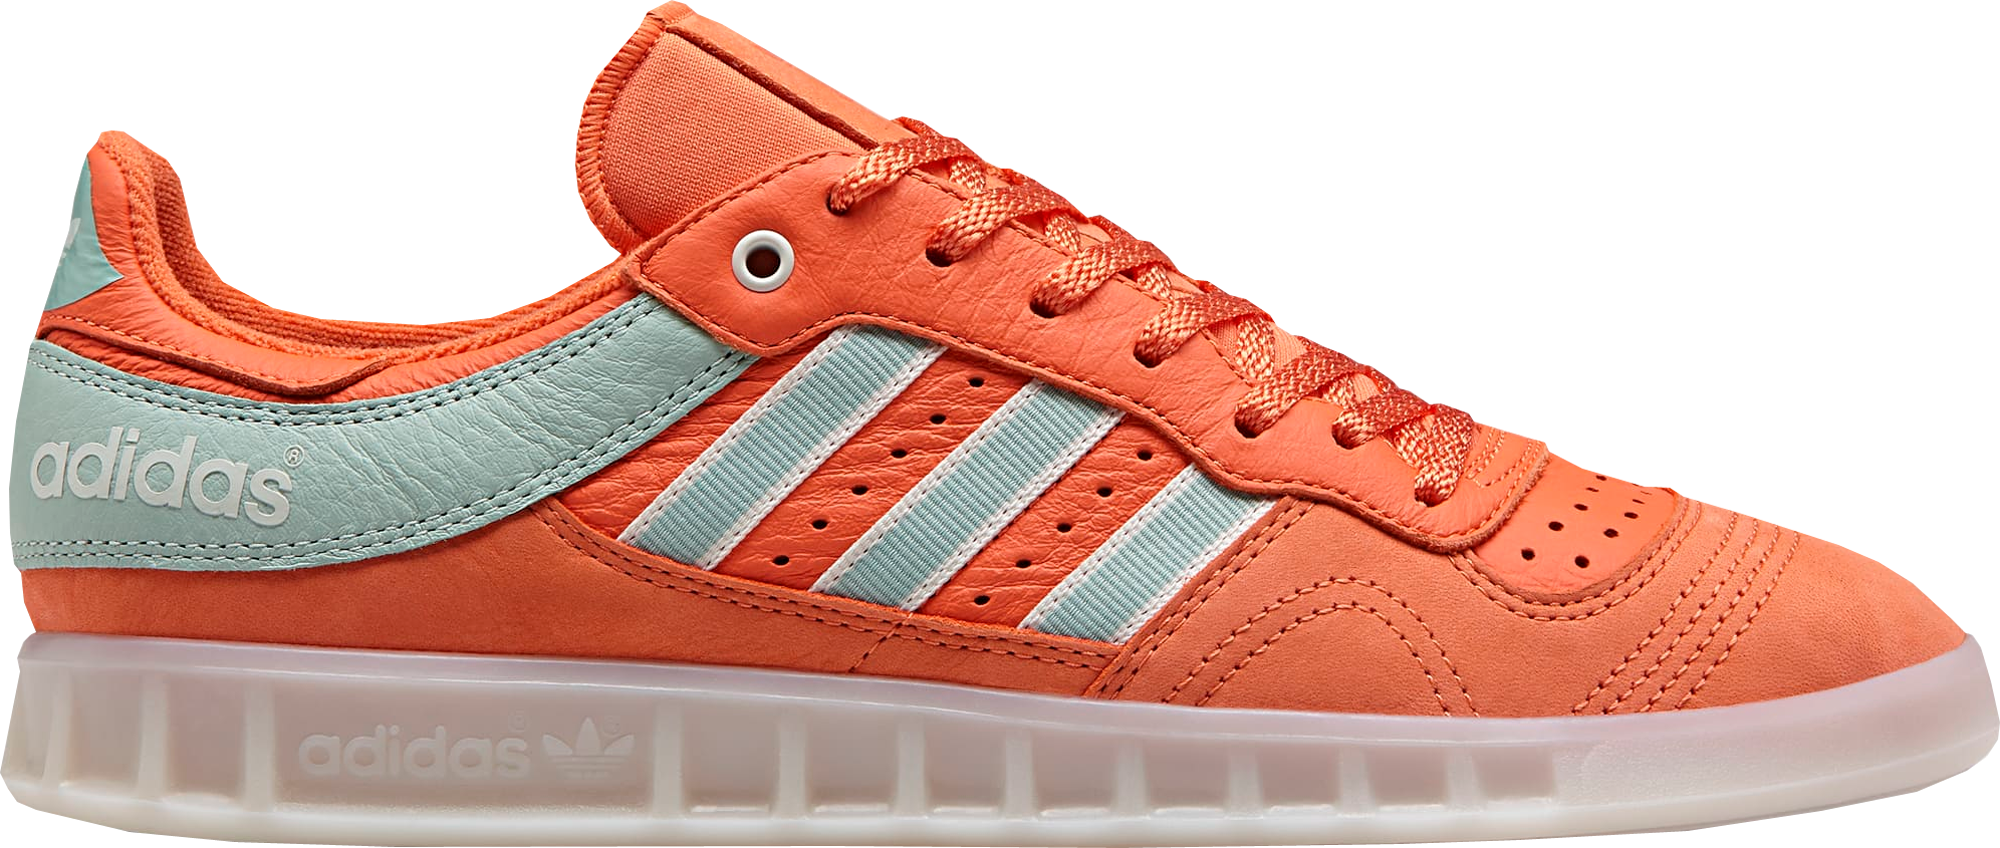 adidas Handball Top Oyster Holdings Scarlet (Friends & Family)